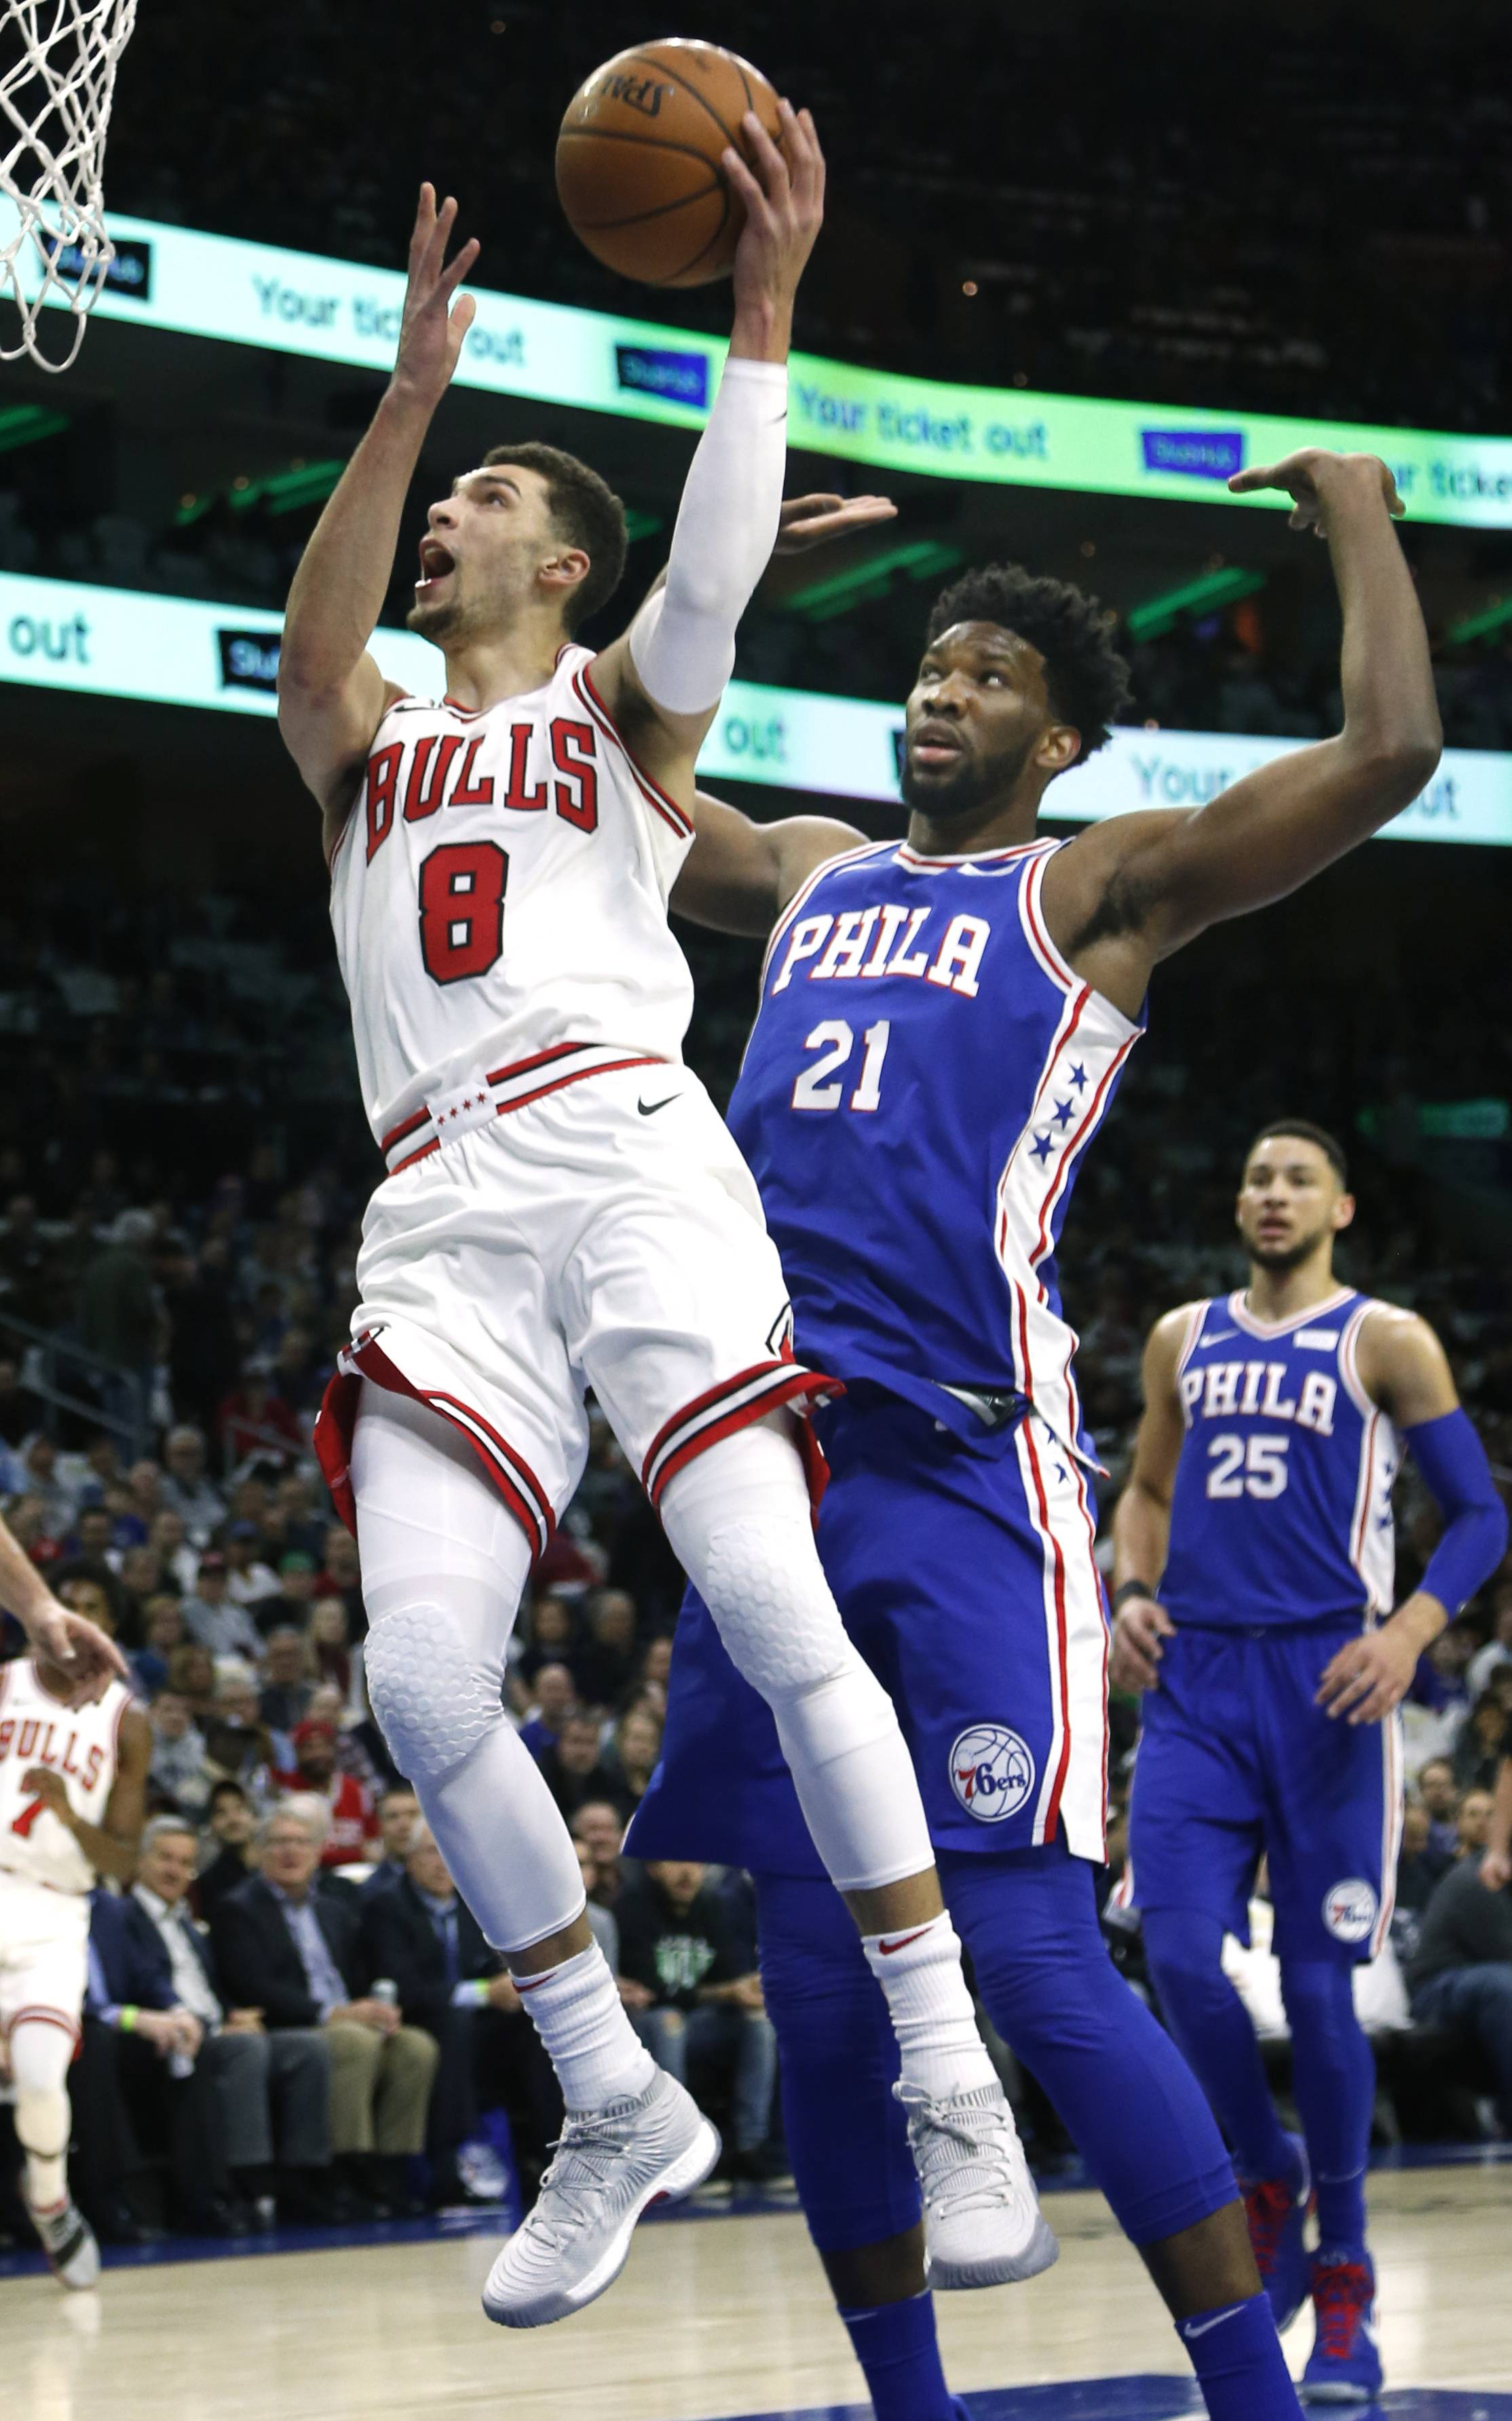 Chicago Bulls guard Zach LaVine (8) goes to the basket past Philadelphia 76ers center Joel Embiid (21) during the first half on an NBA basketball game, Wednesday, Jan. 24, 2018, in Philadelphia.